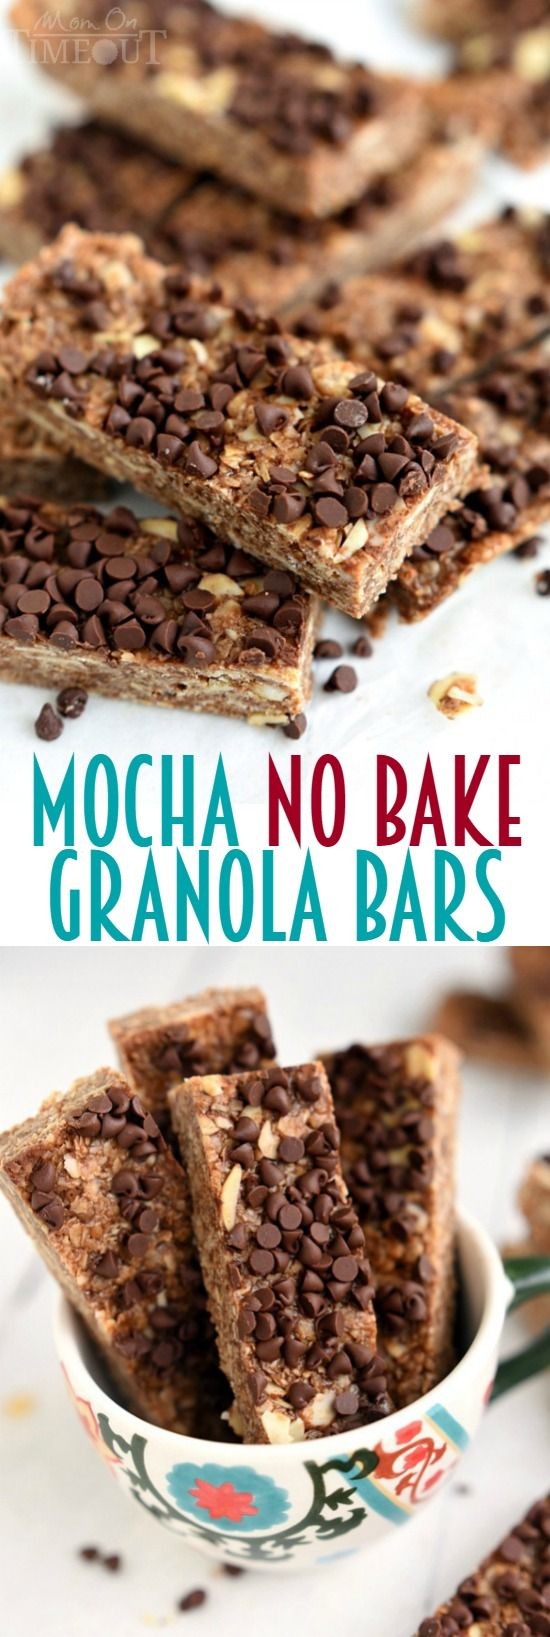 These Mocha No Bake Granola Bars are perfect for a grab-and-go breakfast or an afternoon pick-me-up snack! | MomOnTimeout.com |